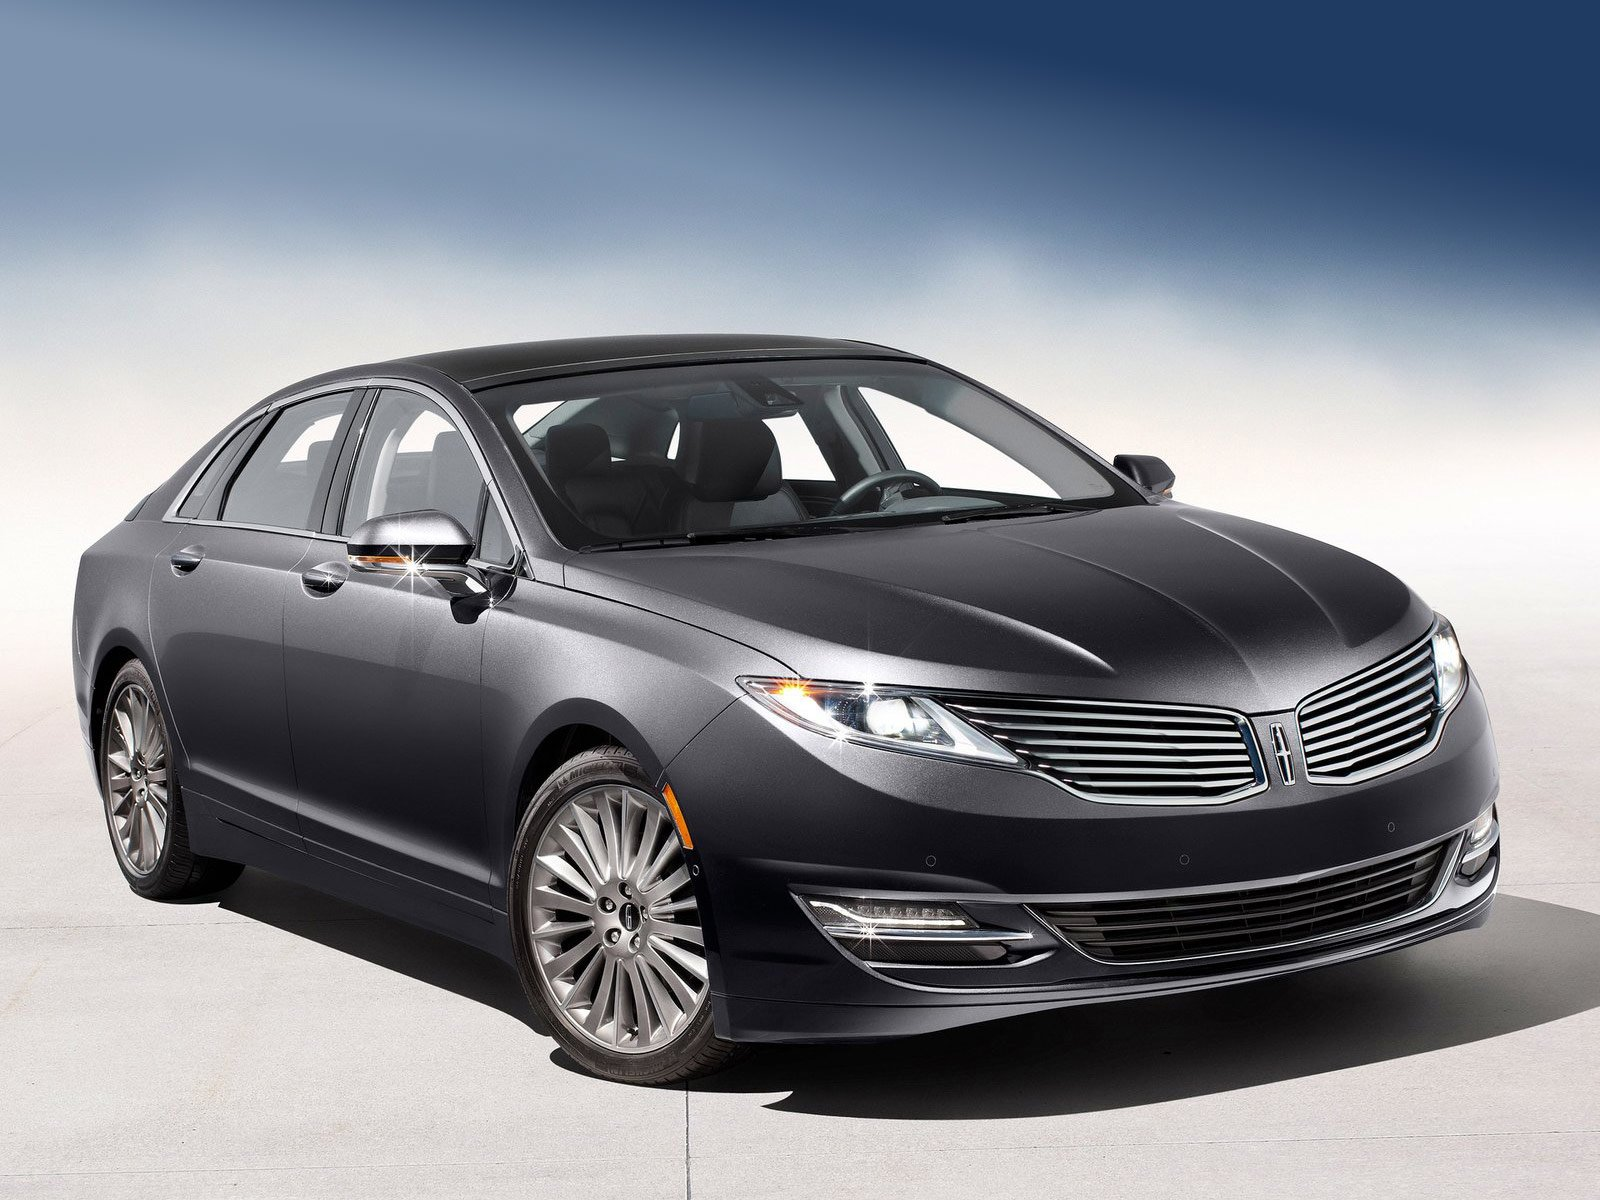 Latest 2013 Lincoln Mkz Car News Free Download